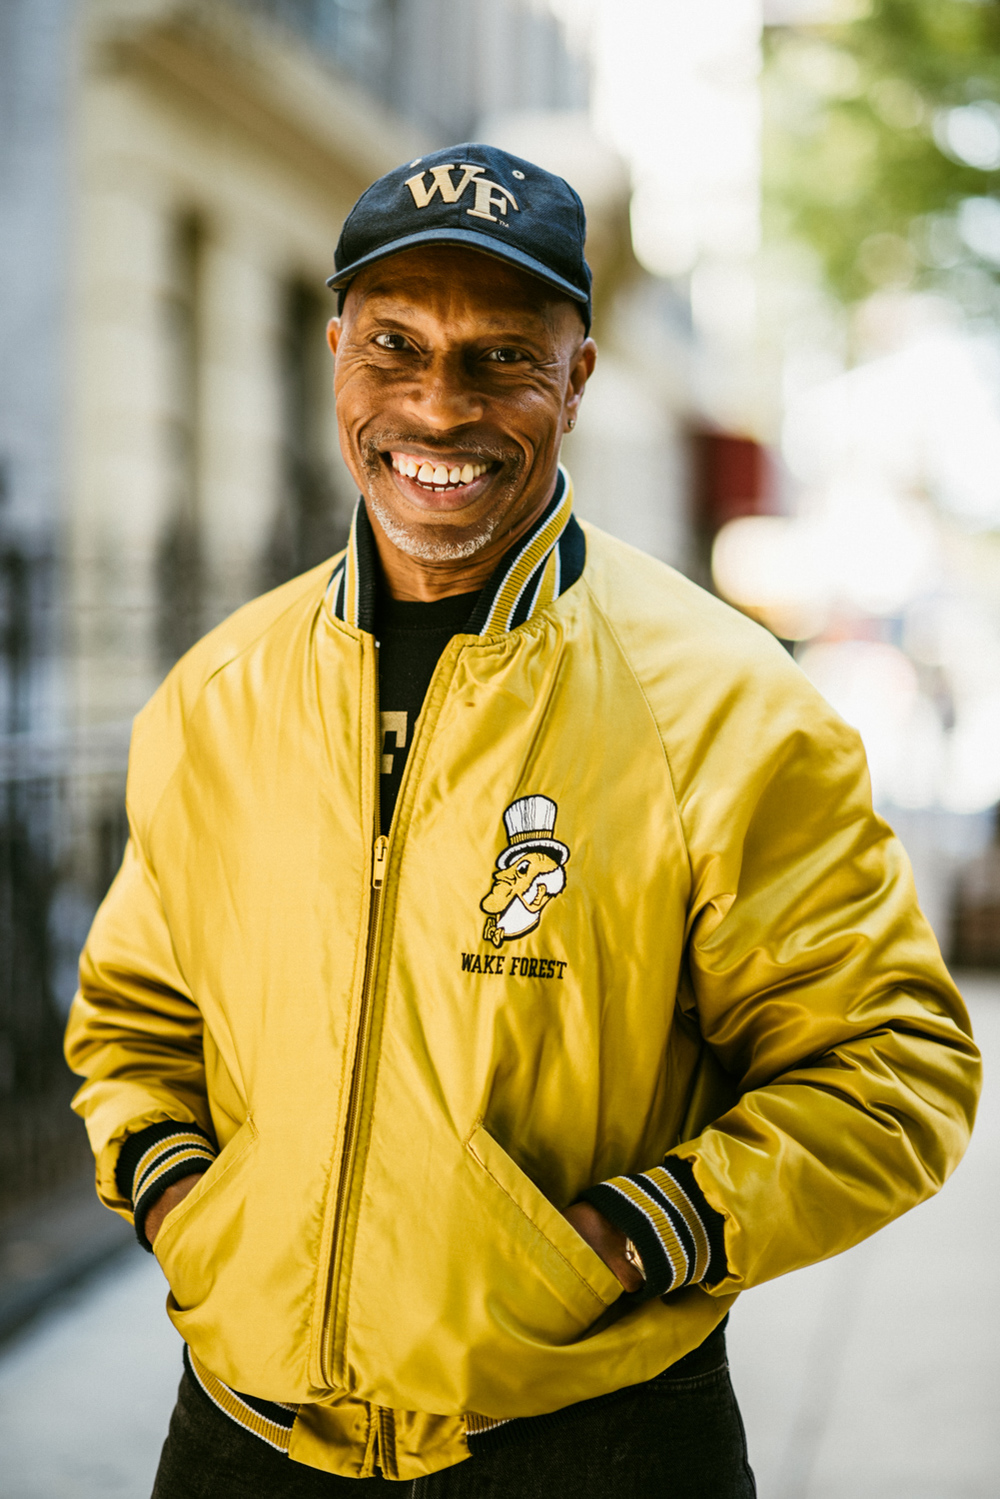 Jeff Dobbs ('77), one of the most popular Demon Deacons of all time,  sporting his vintage WFU letterman jacket in NYC